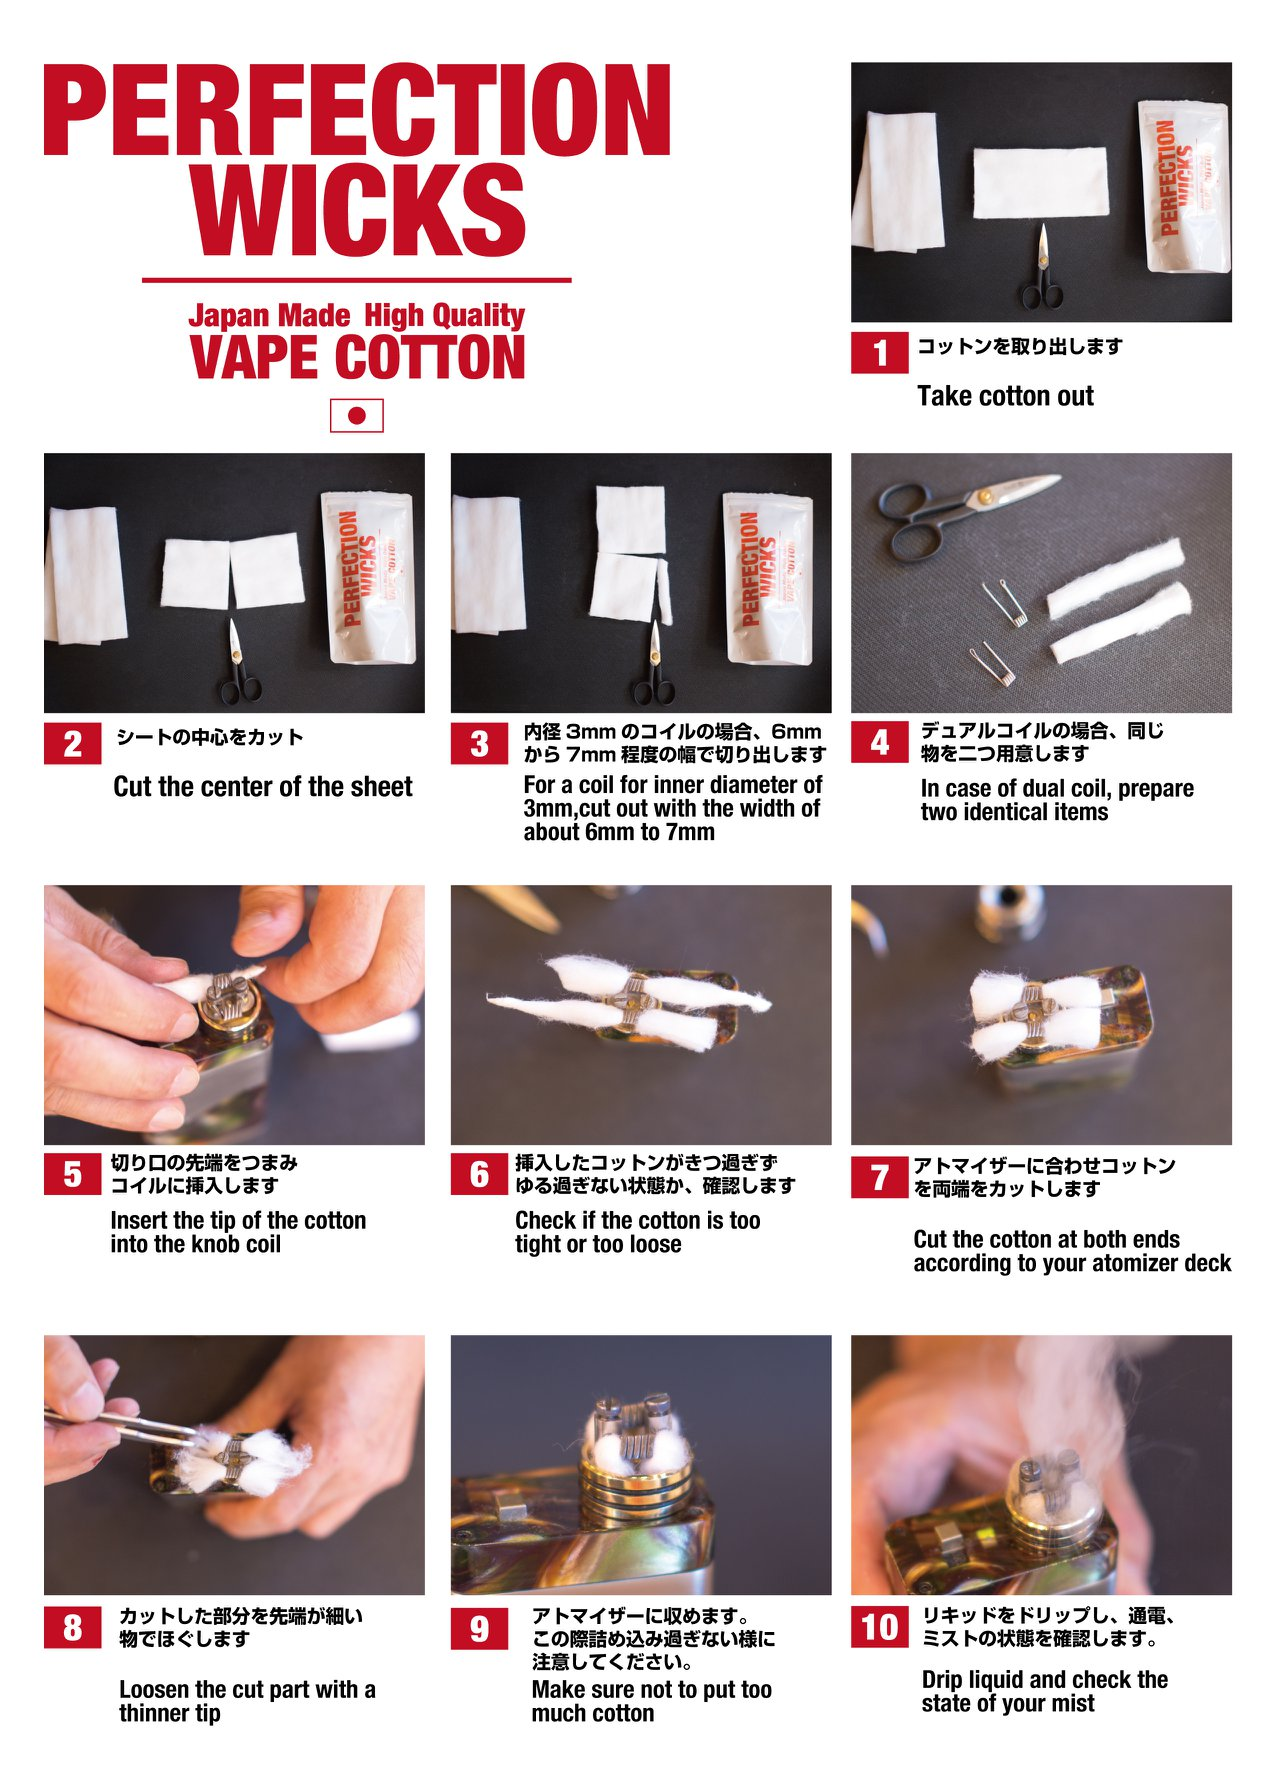 HOW TO USE PERFECTION WICKS